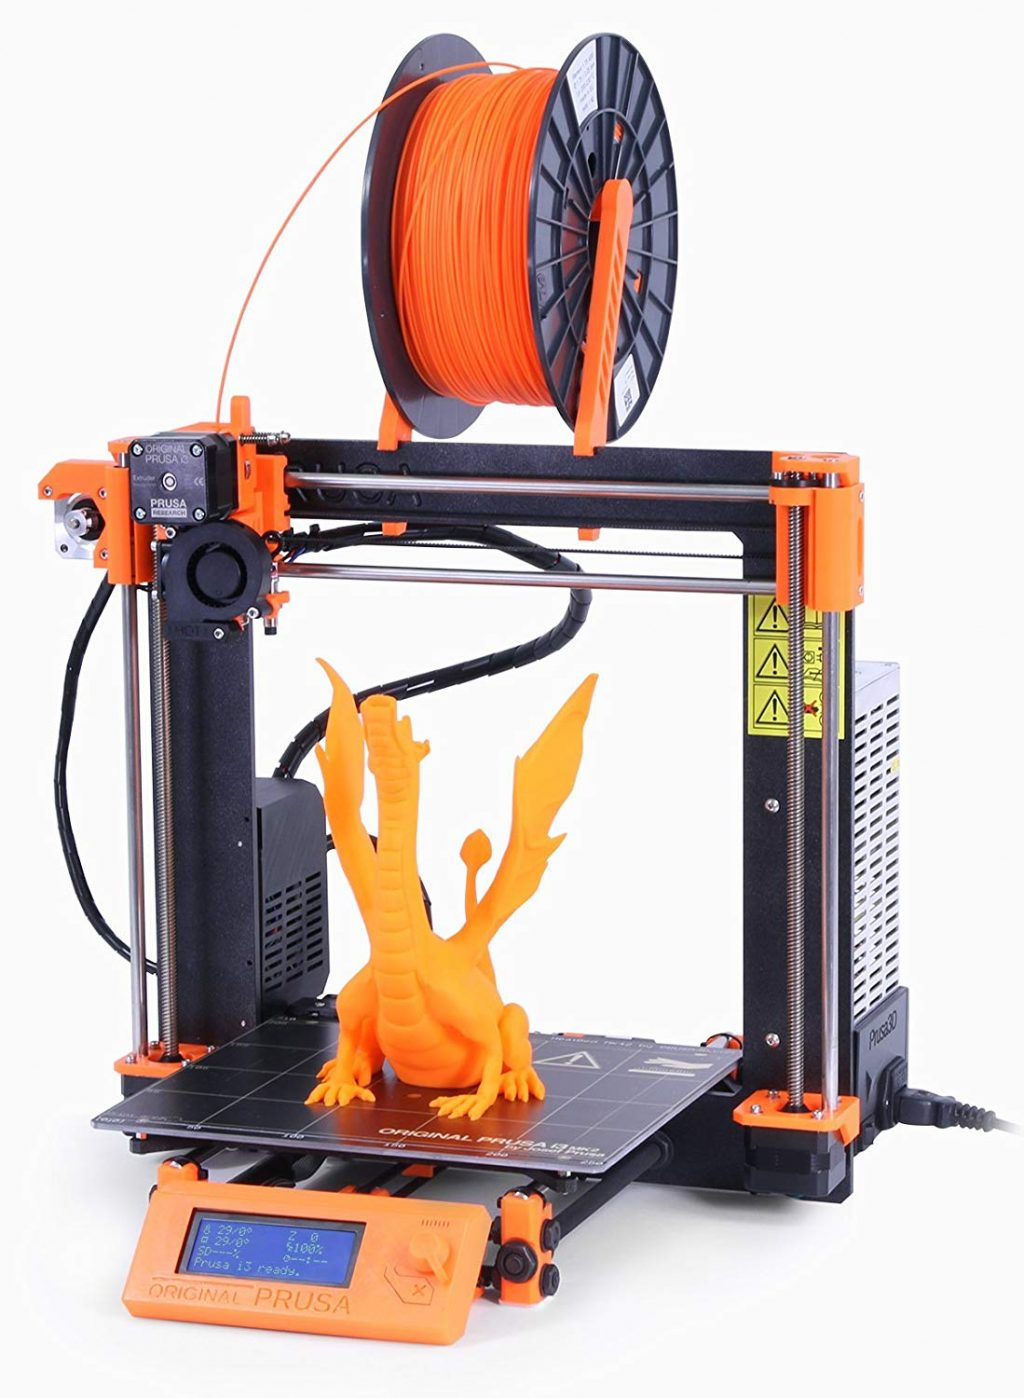 3d printer with printed dragon